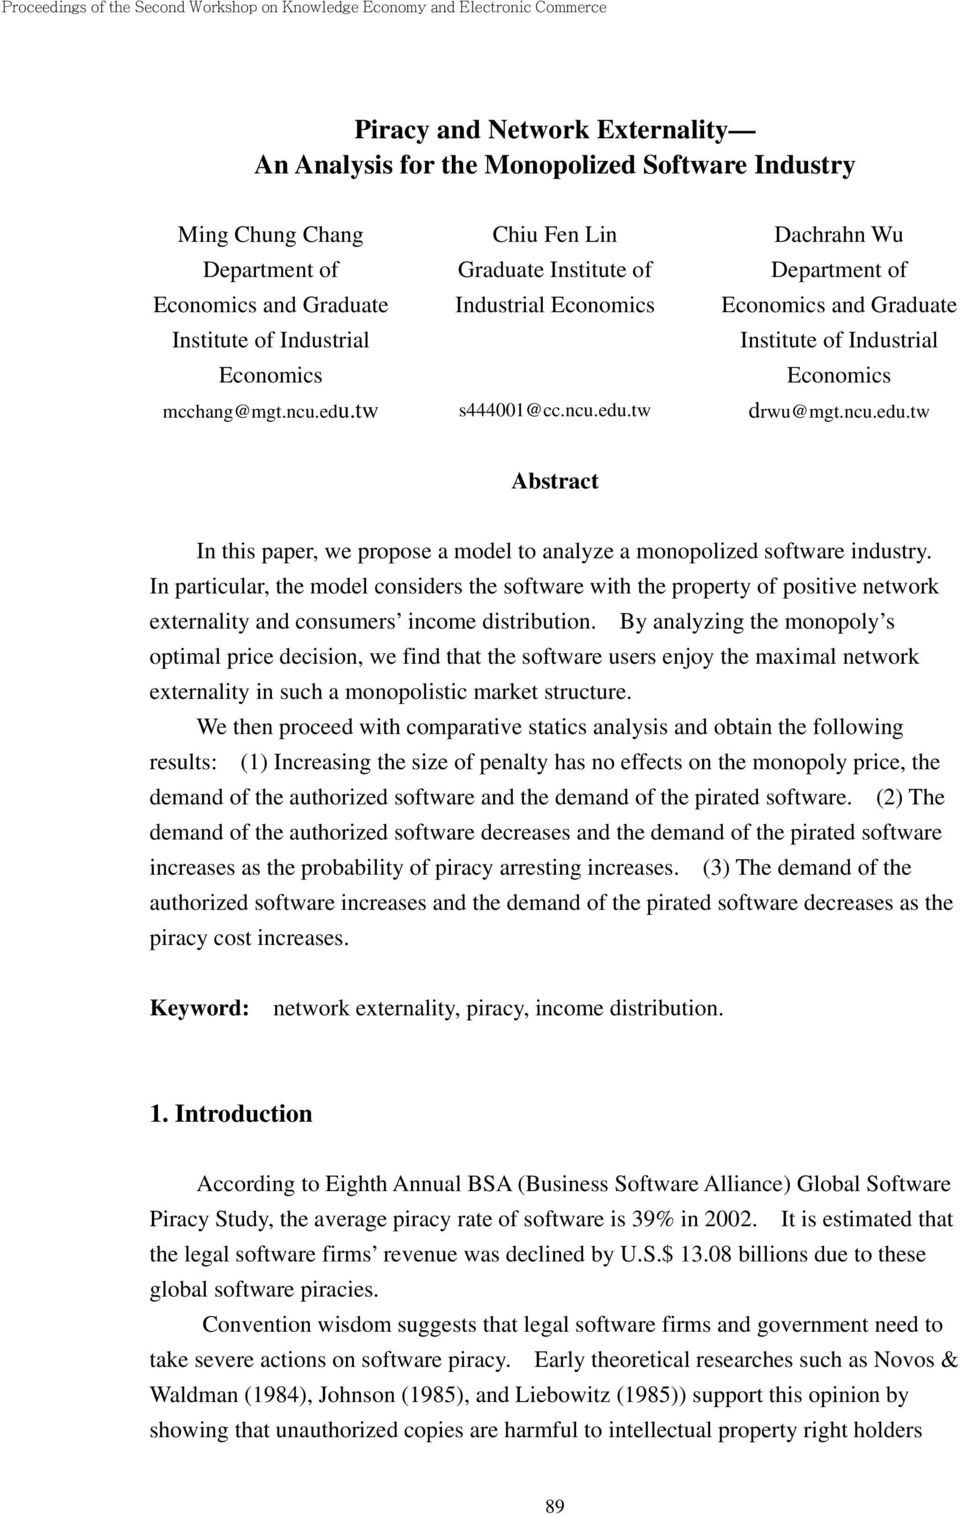 In articular, the model considers the software with the roerty of ositive network externality and consumers income distribution.